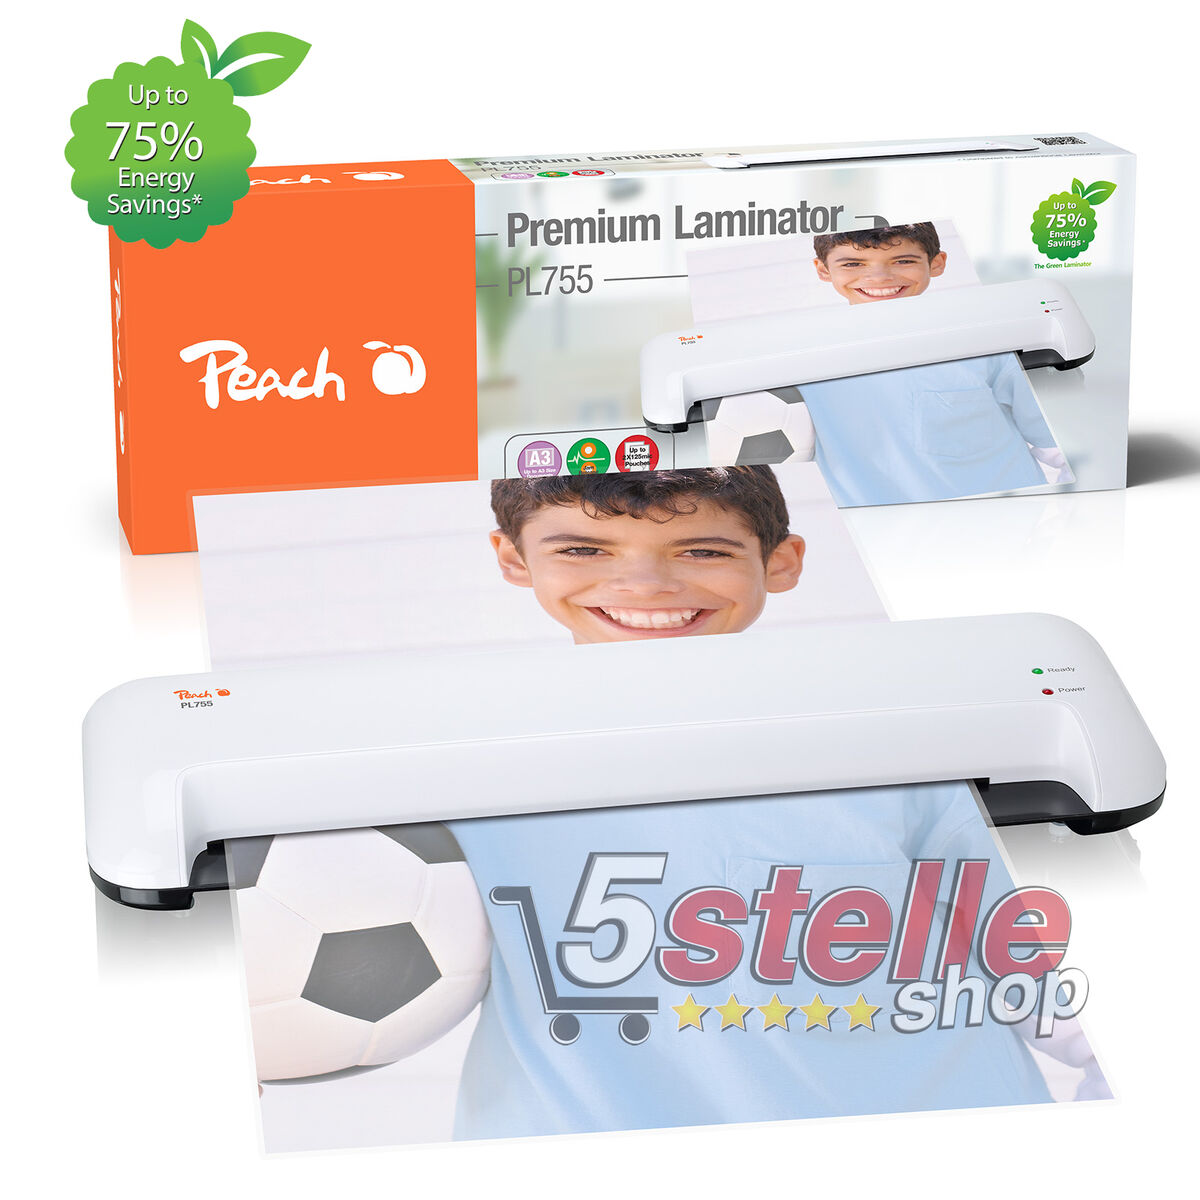 Plastificatrice a caldo a3 peach pl755 kit pouches fogli carta documenti foto 